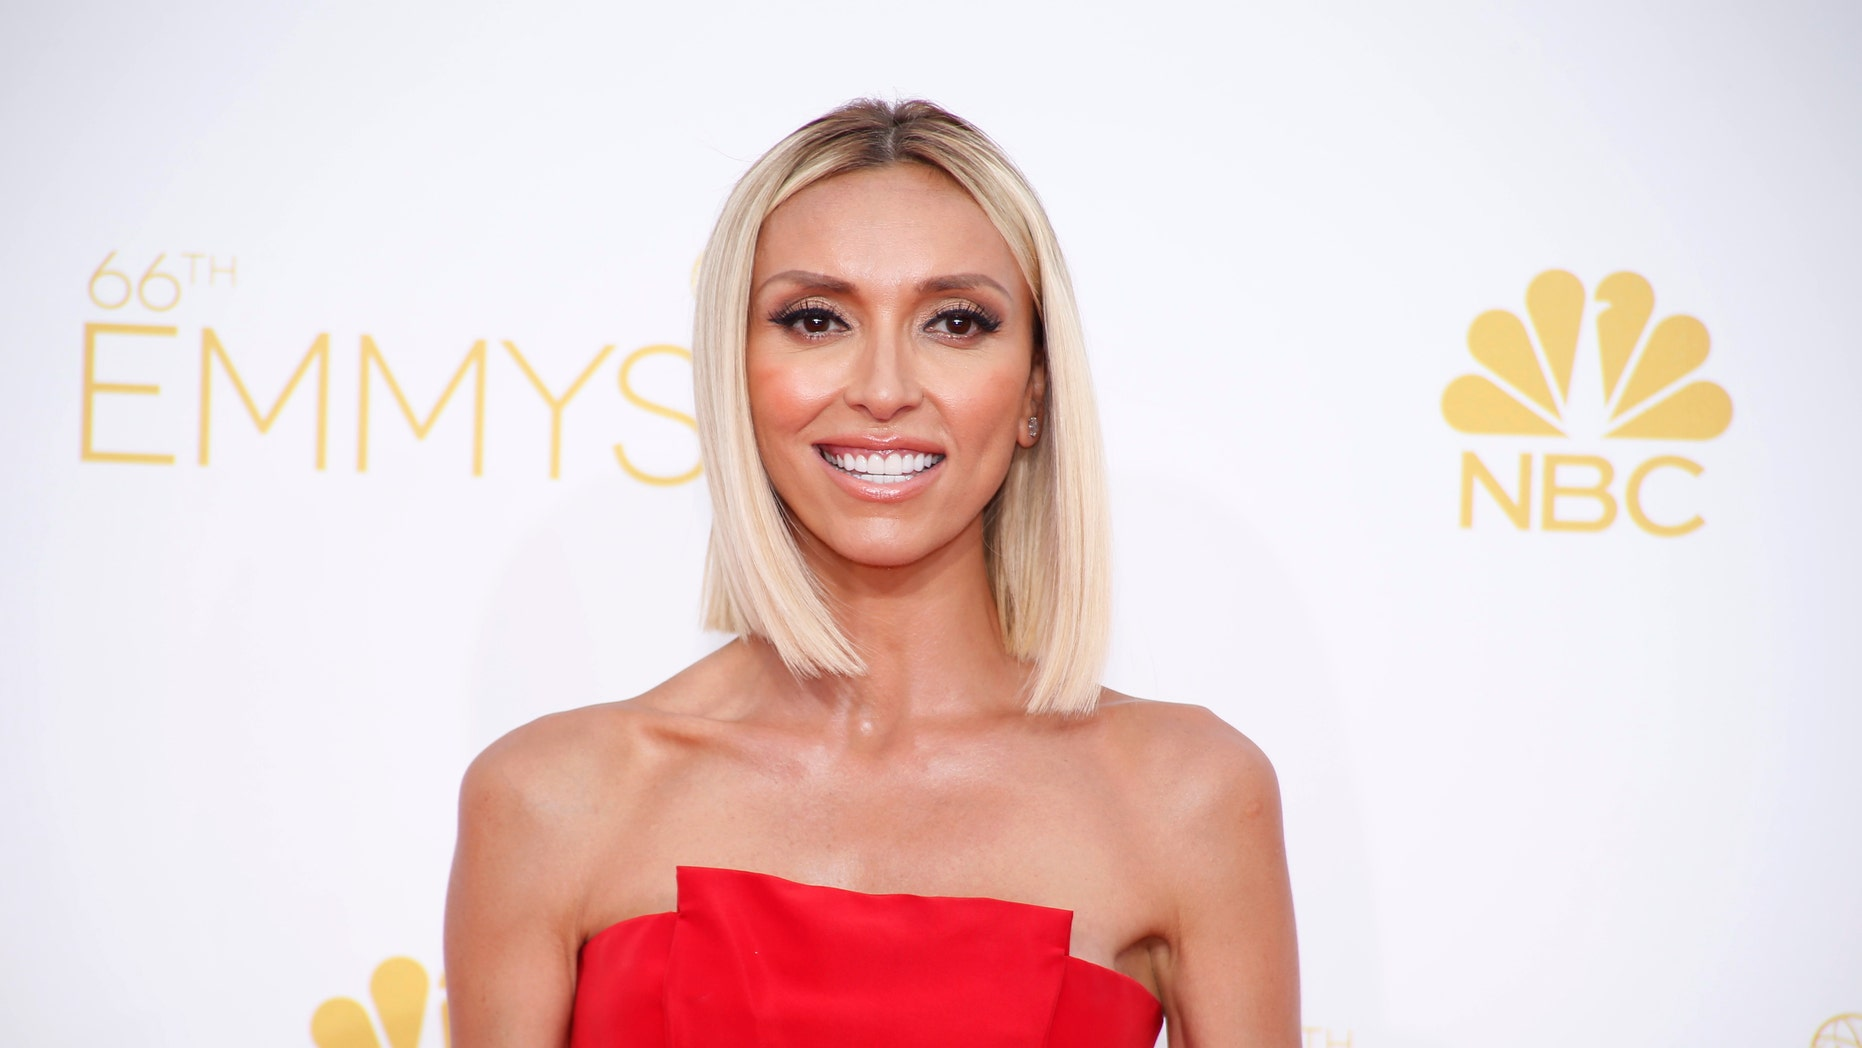 Giuliana Rancic arrives at the 66th Primetime Emmy Awards in Los Angeles, California August 25, 2014.  REUTERS/Lucy Nicholson (UNITED STATES -Tags: ENTERTAINMENT)(EMMYS-ARRIVALS) - RTR43PQT